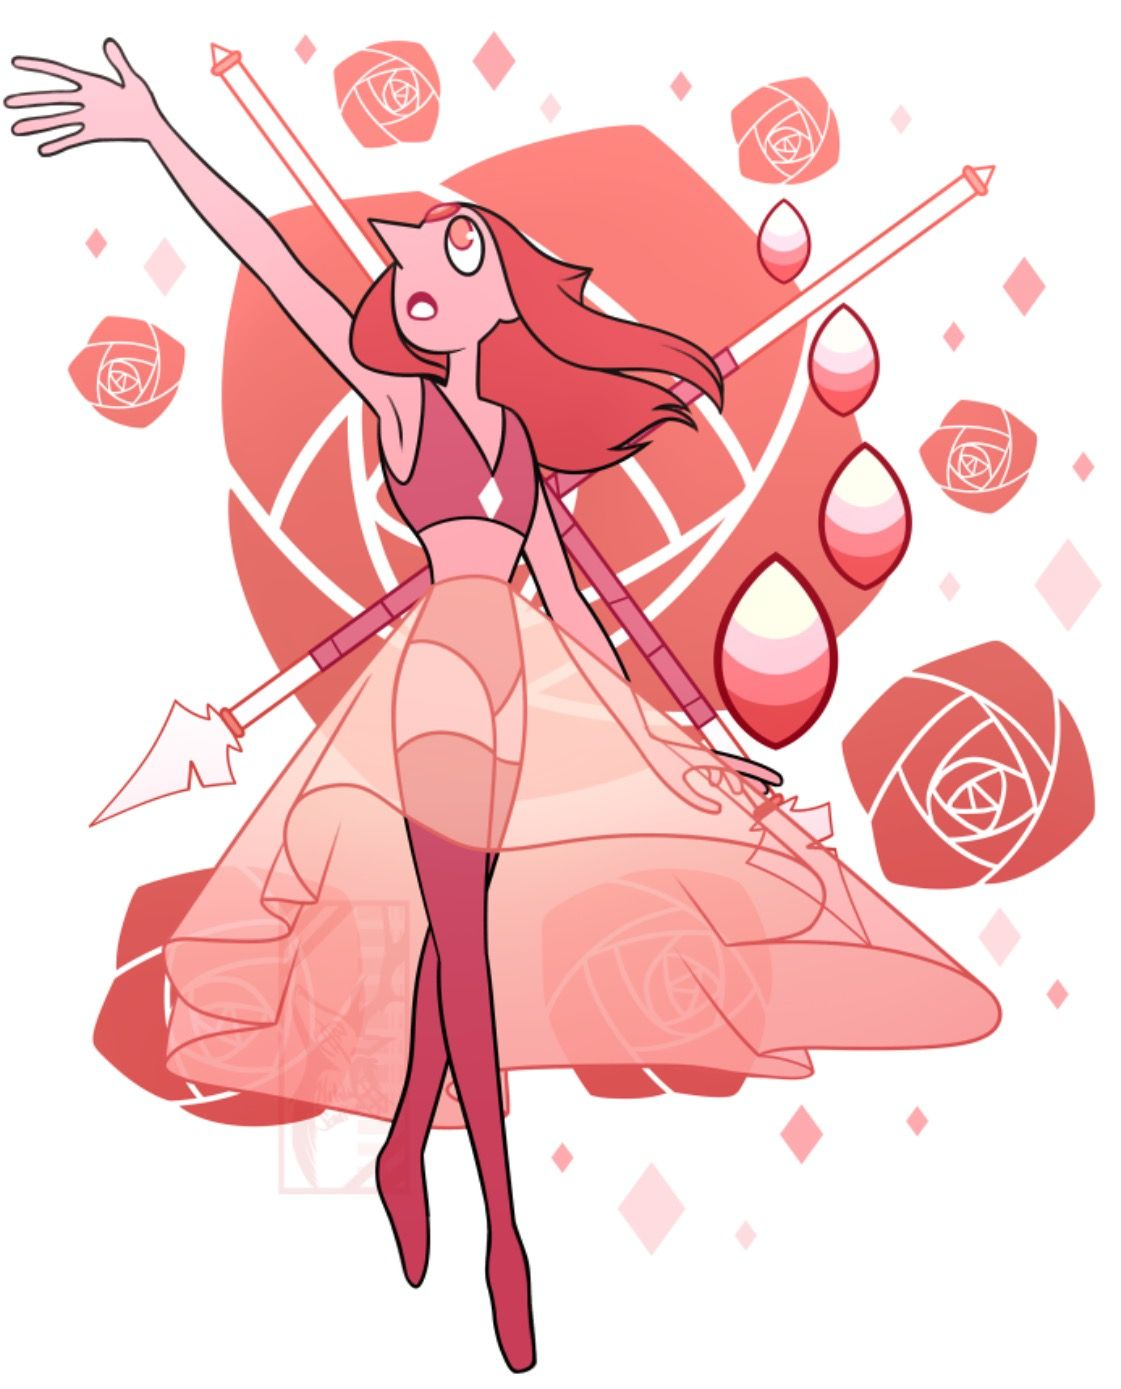 Coral Pearl Steven universe gem, Character inspiration